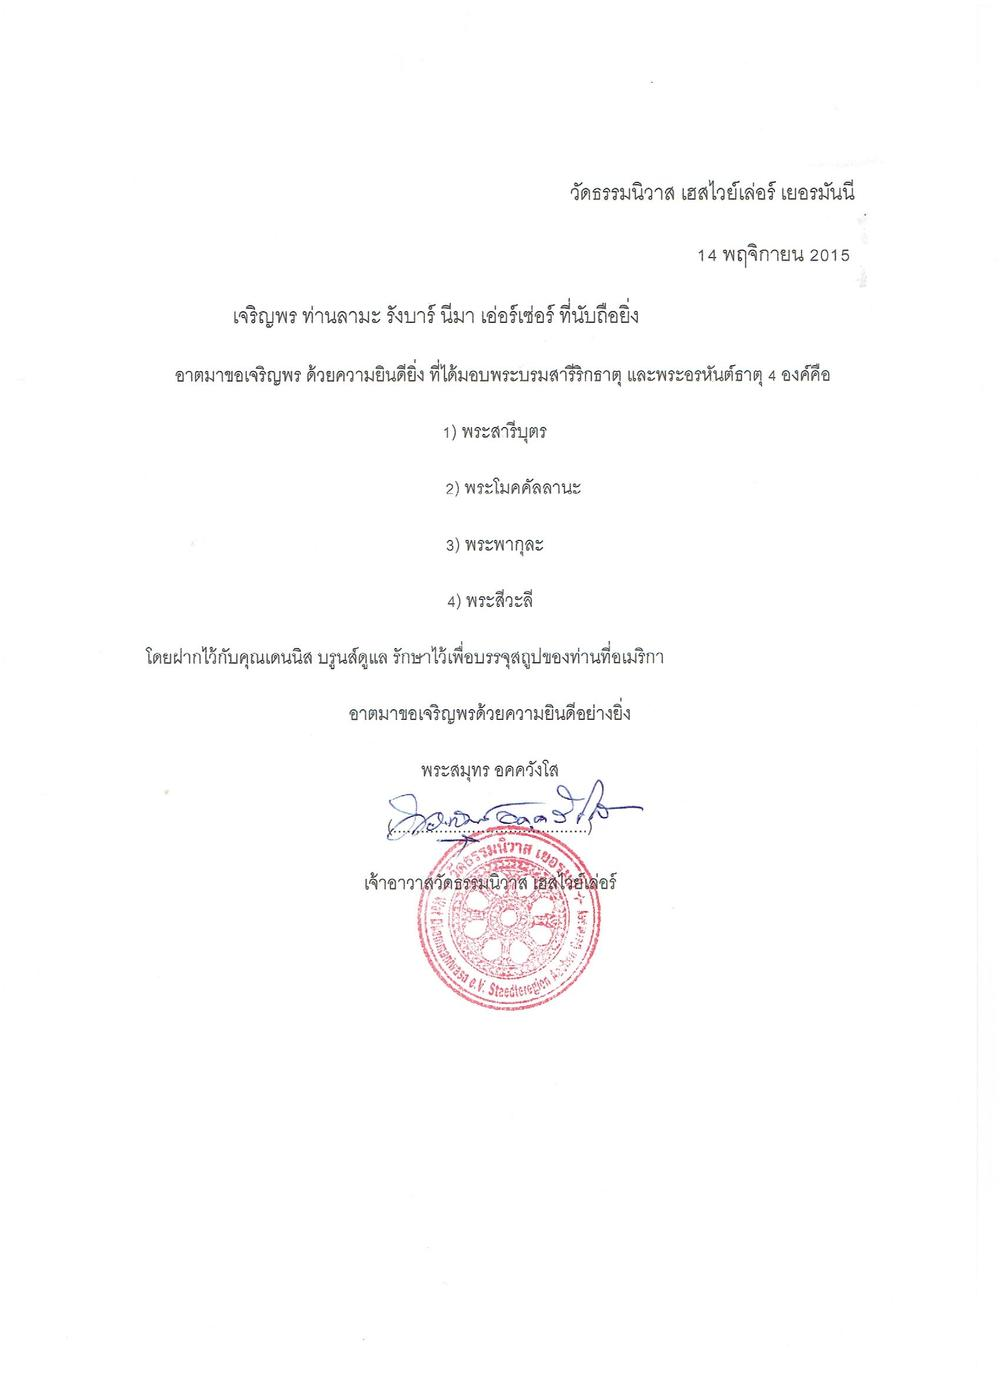 Thai letter from Germany Abbot.jpg